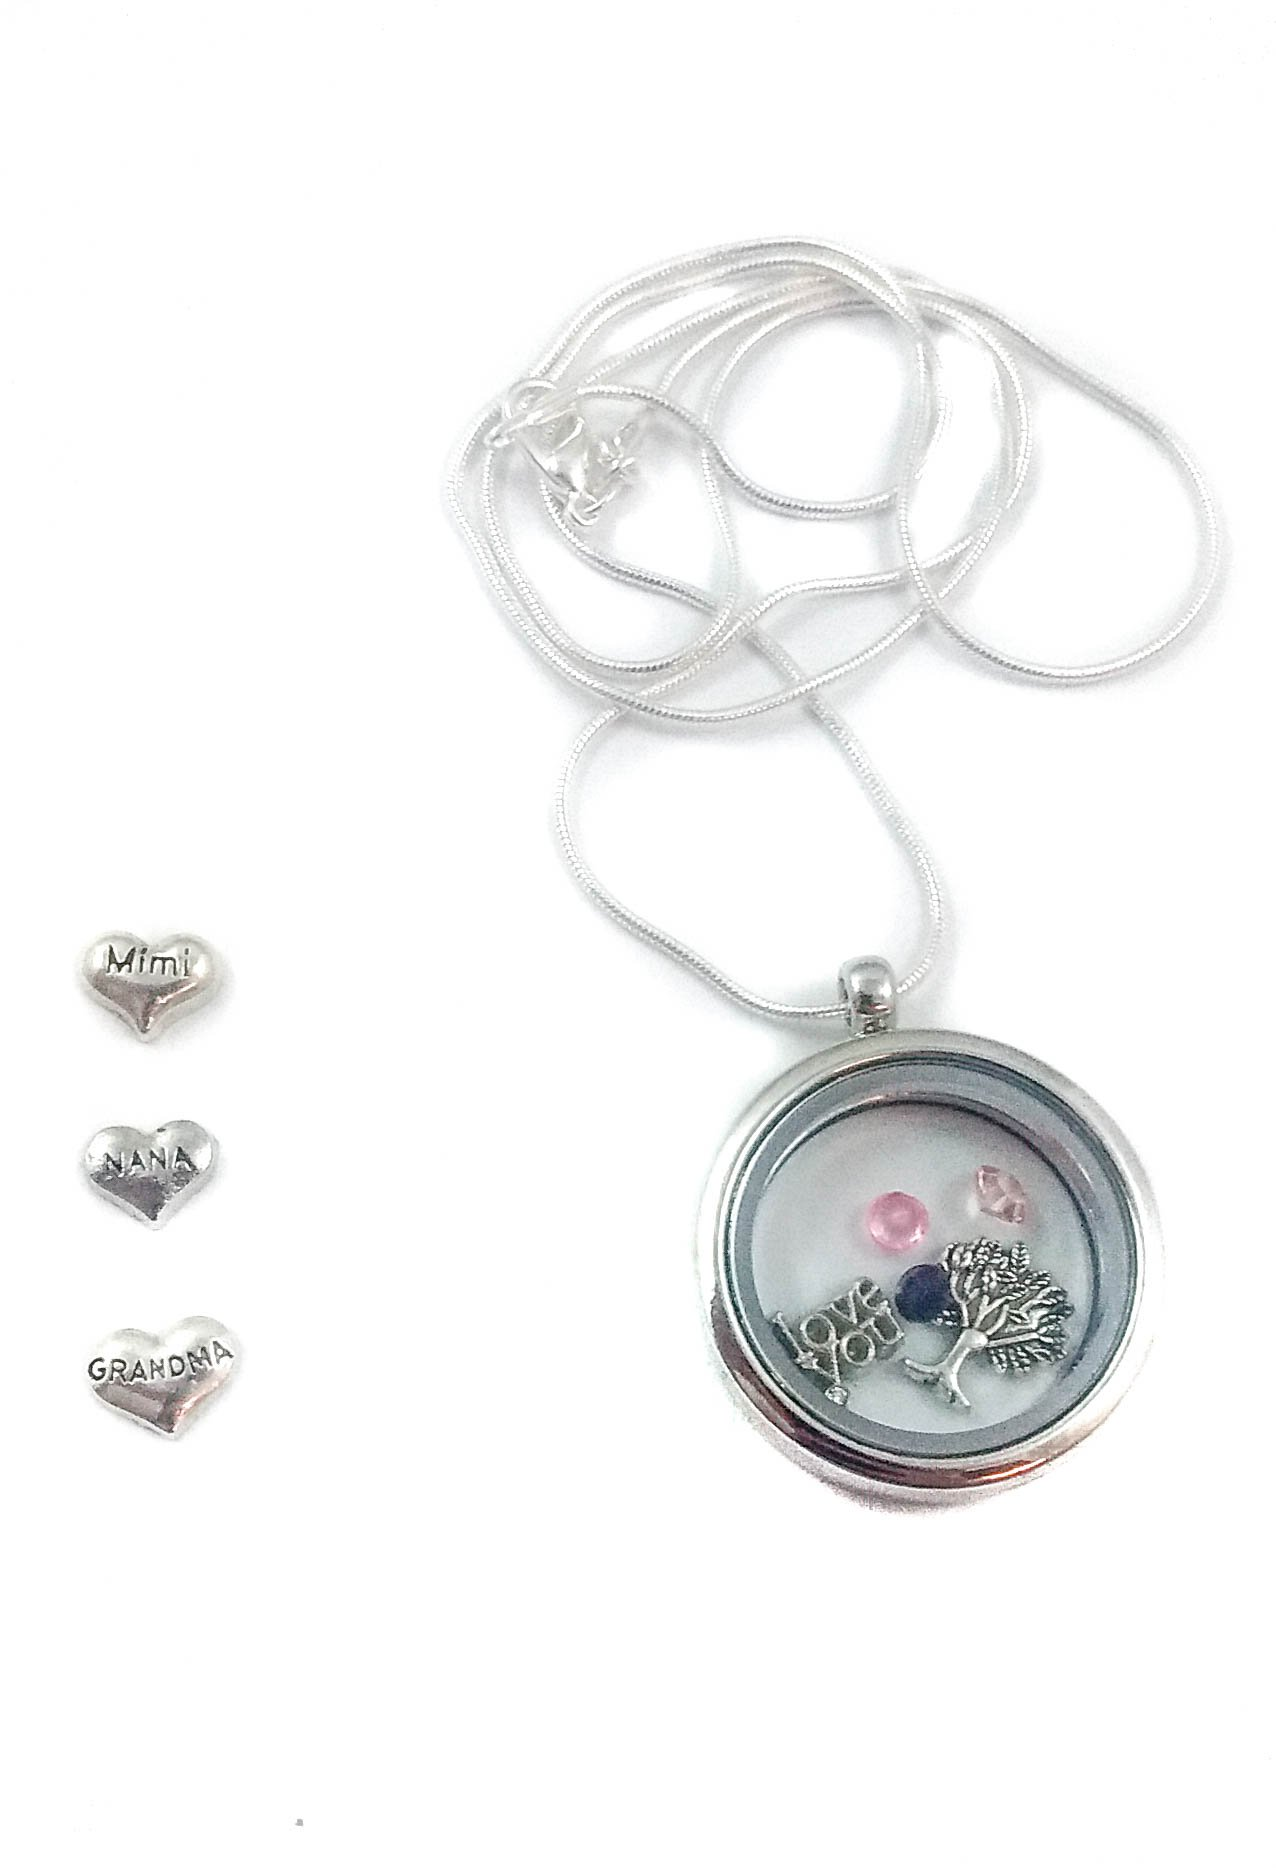 Grandma Mimi or Nana Mother's Day by Living Memory Lockets for Less Necklace Mothers Day (Nana)